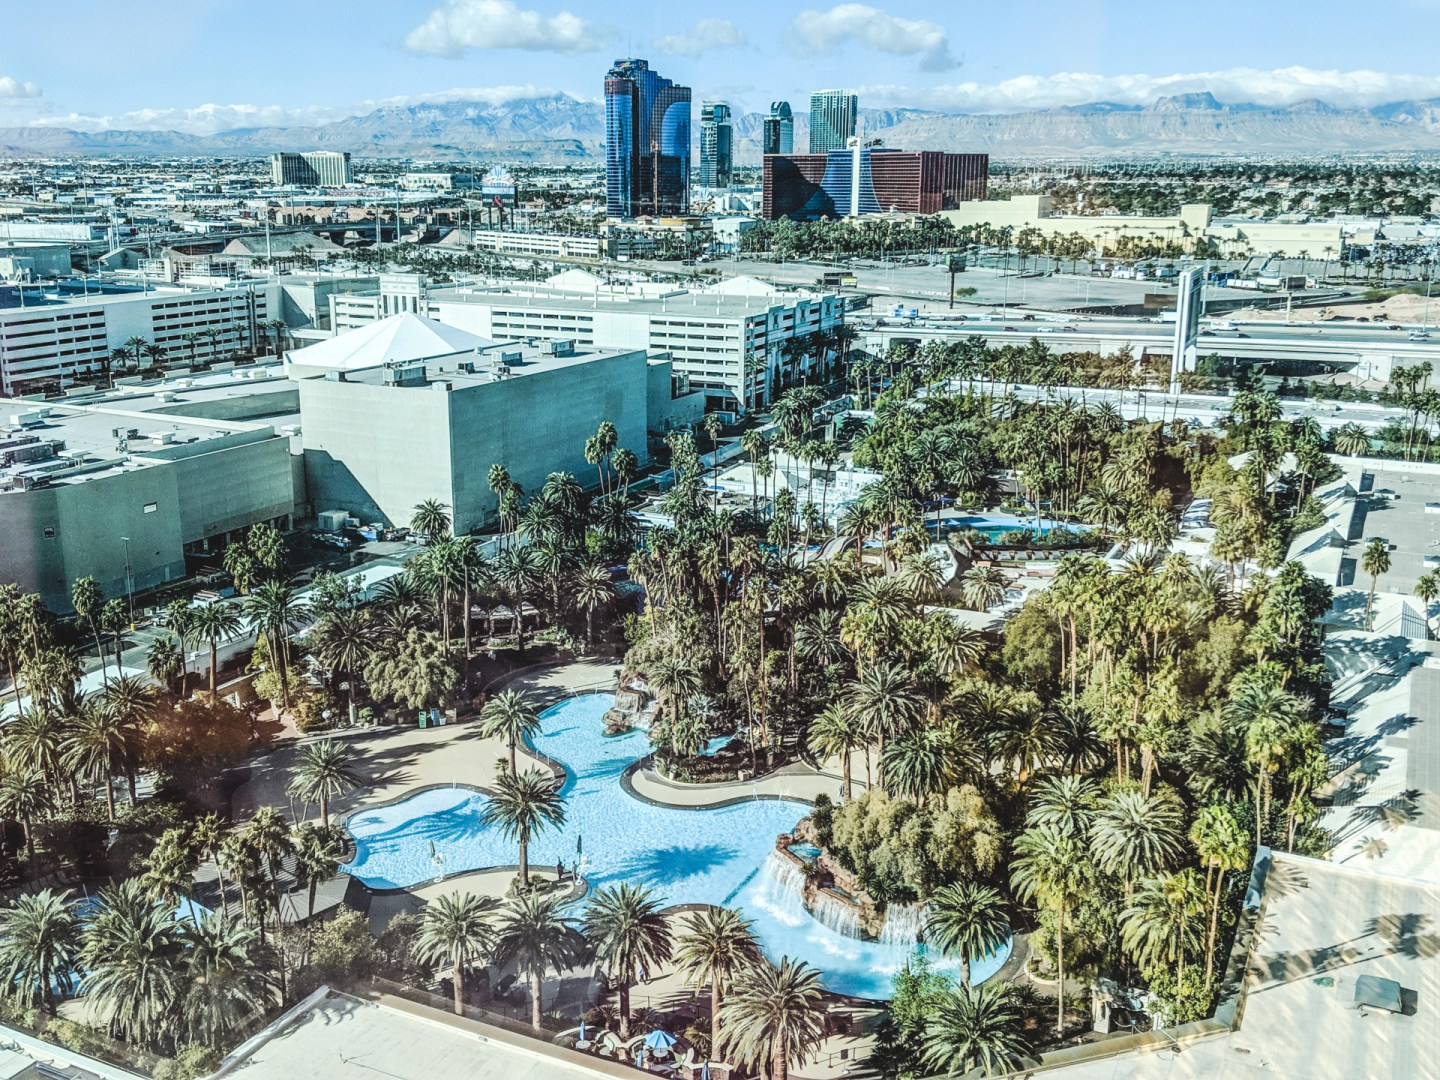 Mirage Hotel Pool View